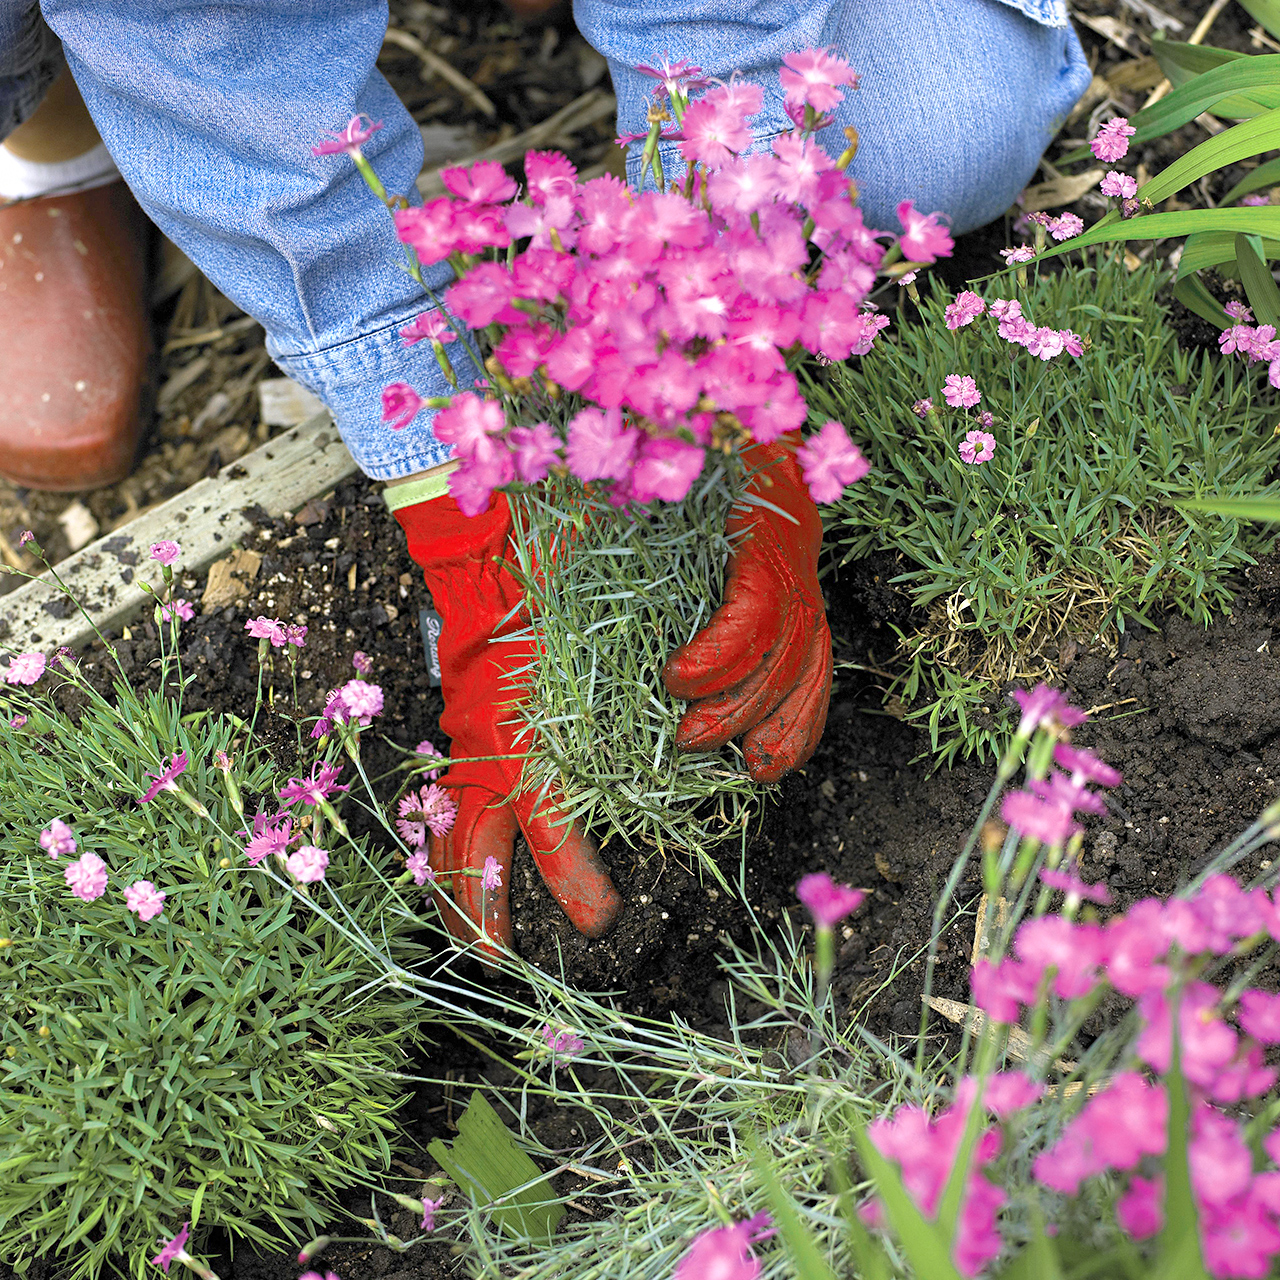 place plant in soil and spread roots